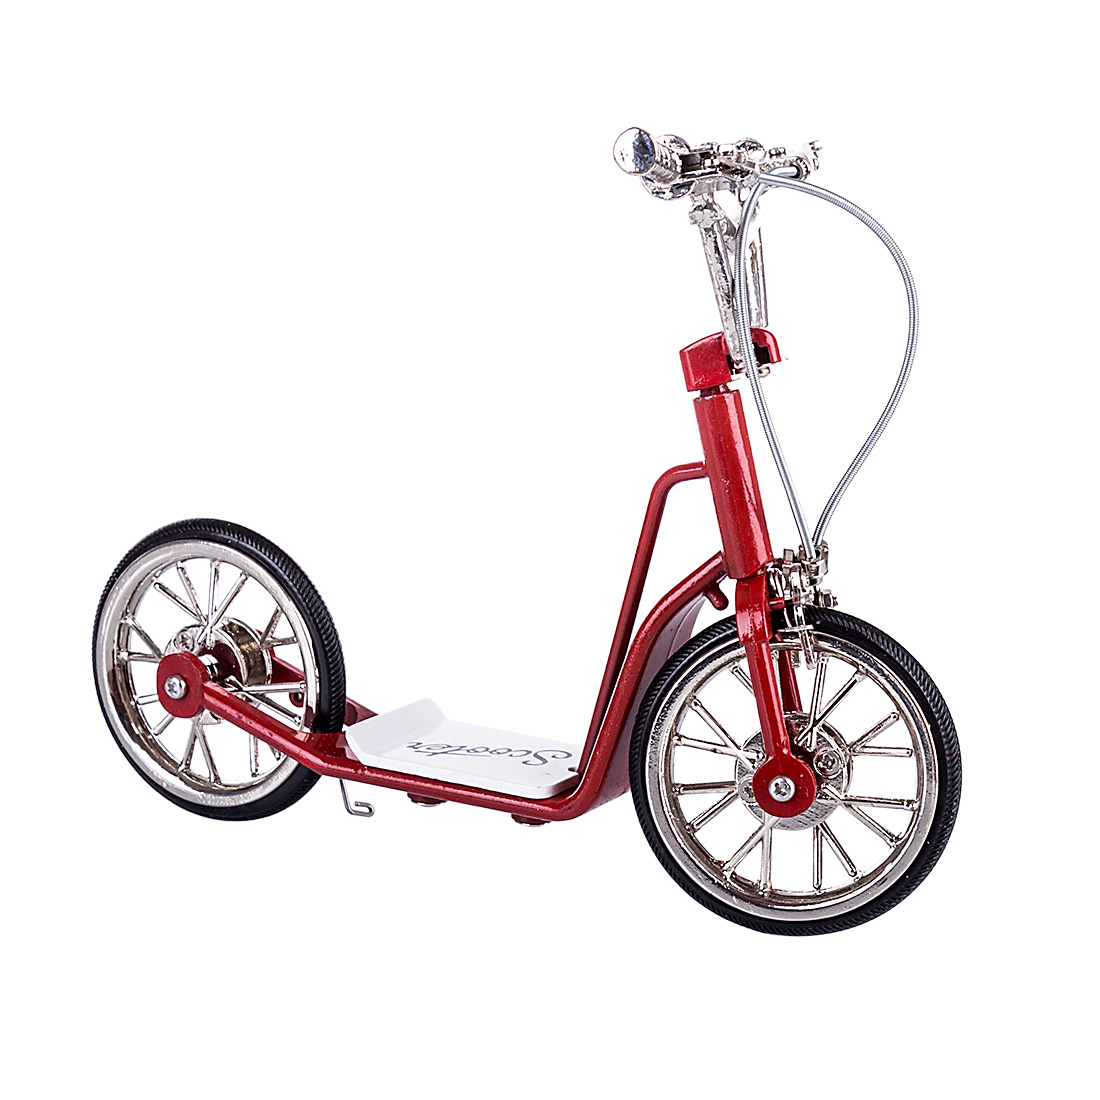 DIY Metal Handmade Scooter Model Crafts Decoration Home Decoration Accessories For Living Room Bedroom Decor - Red FS-0065